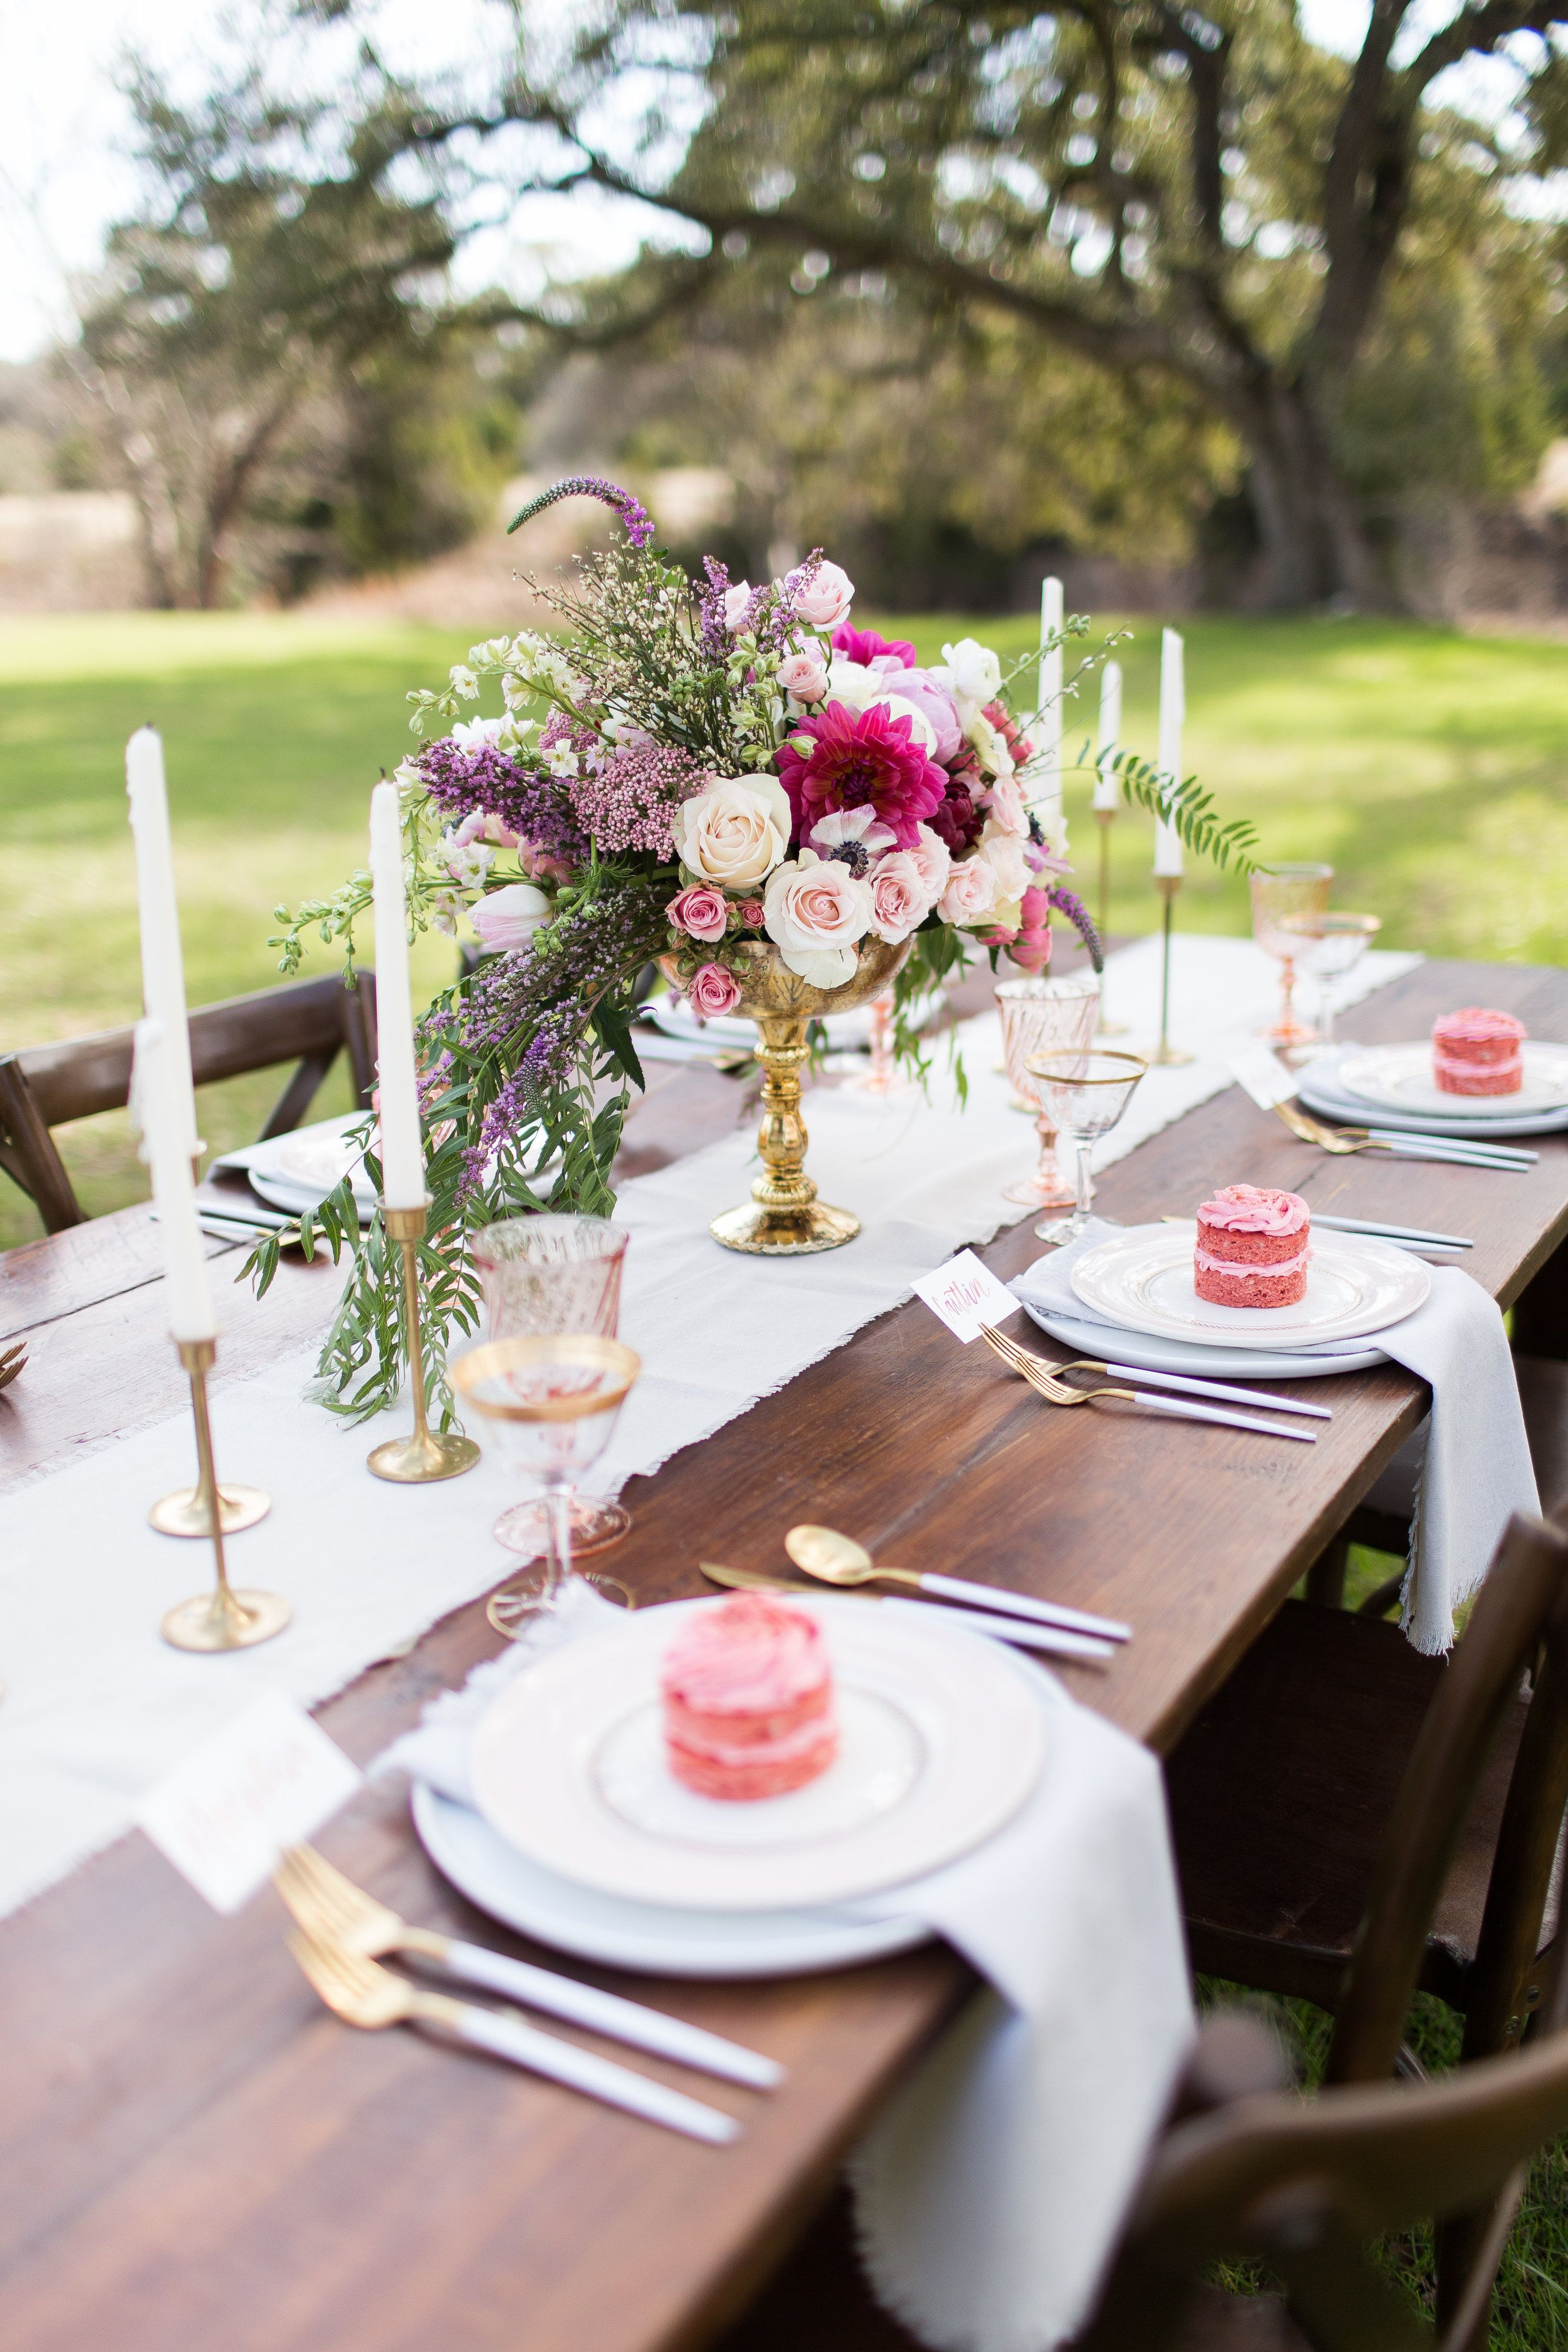 Our Collection Of Vintage And Modern Rental Furnishings Galentines Party Gold Wedding Decorations Table Top Design